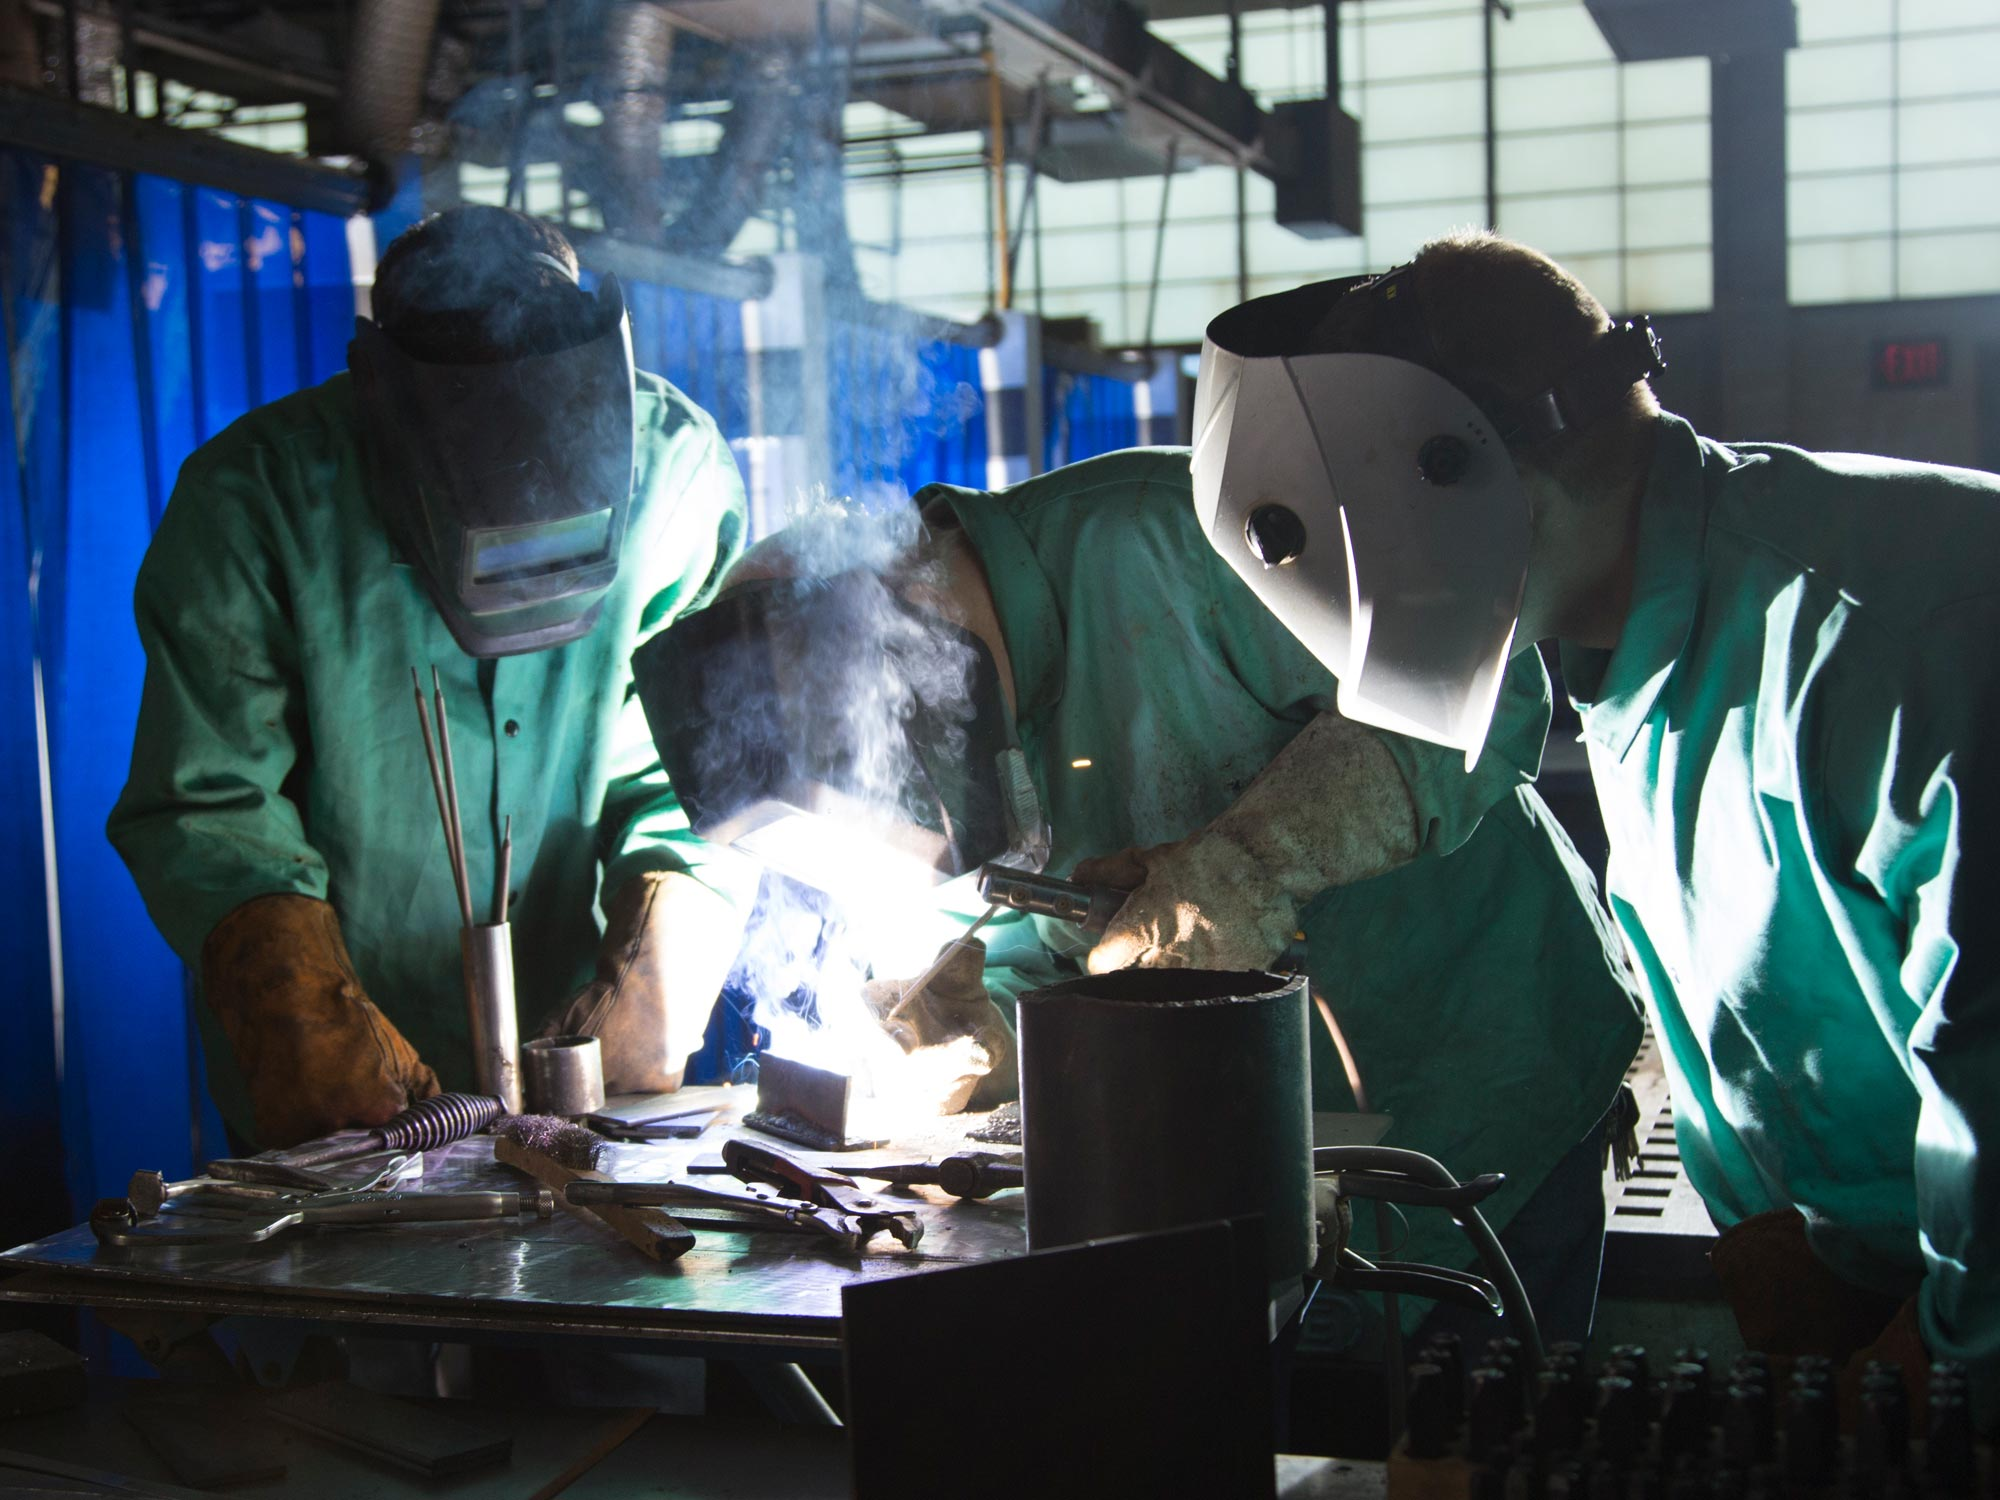 Several students welding with face masks